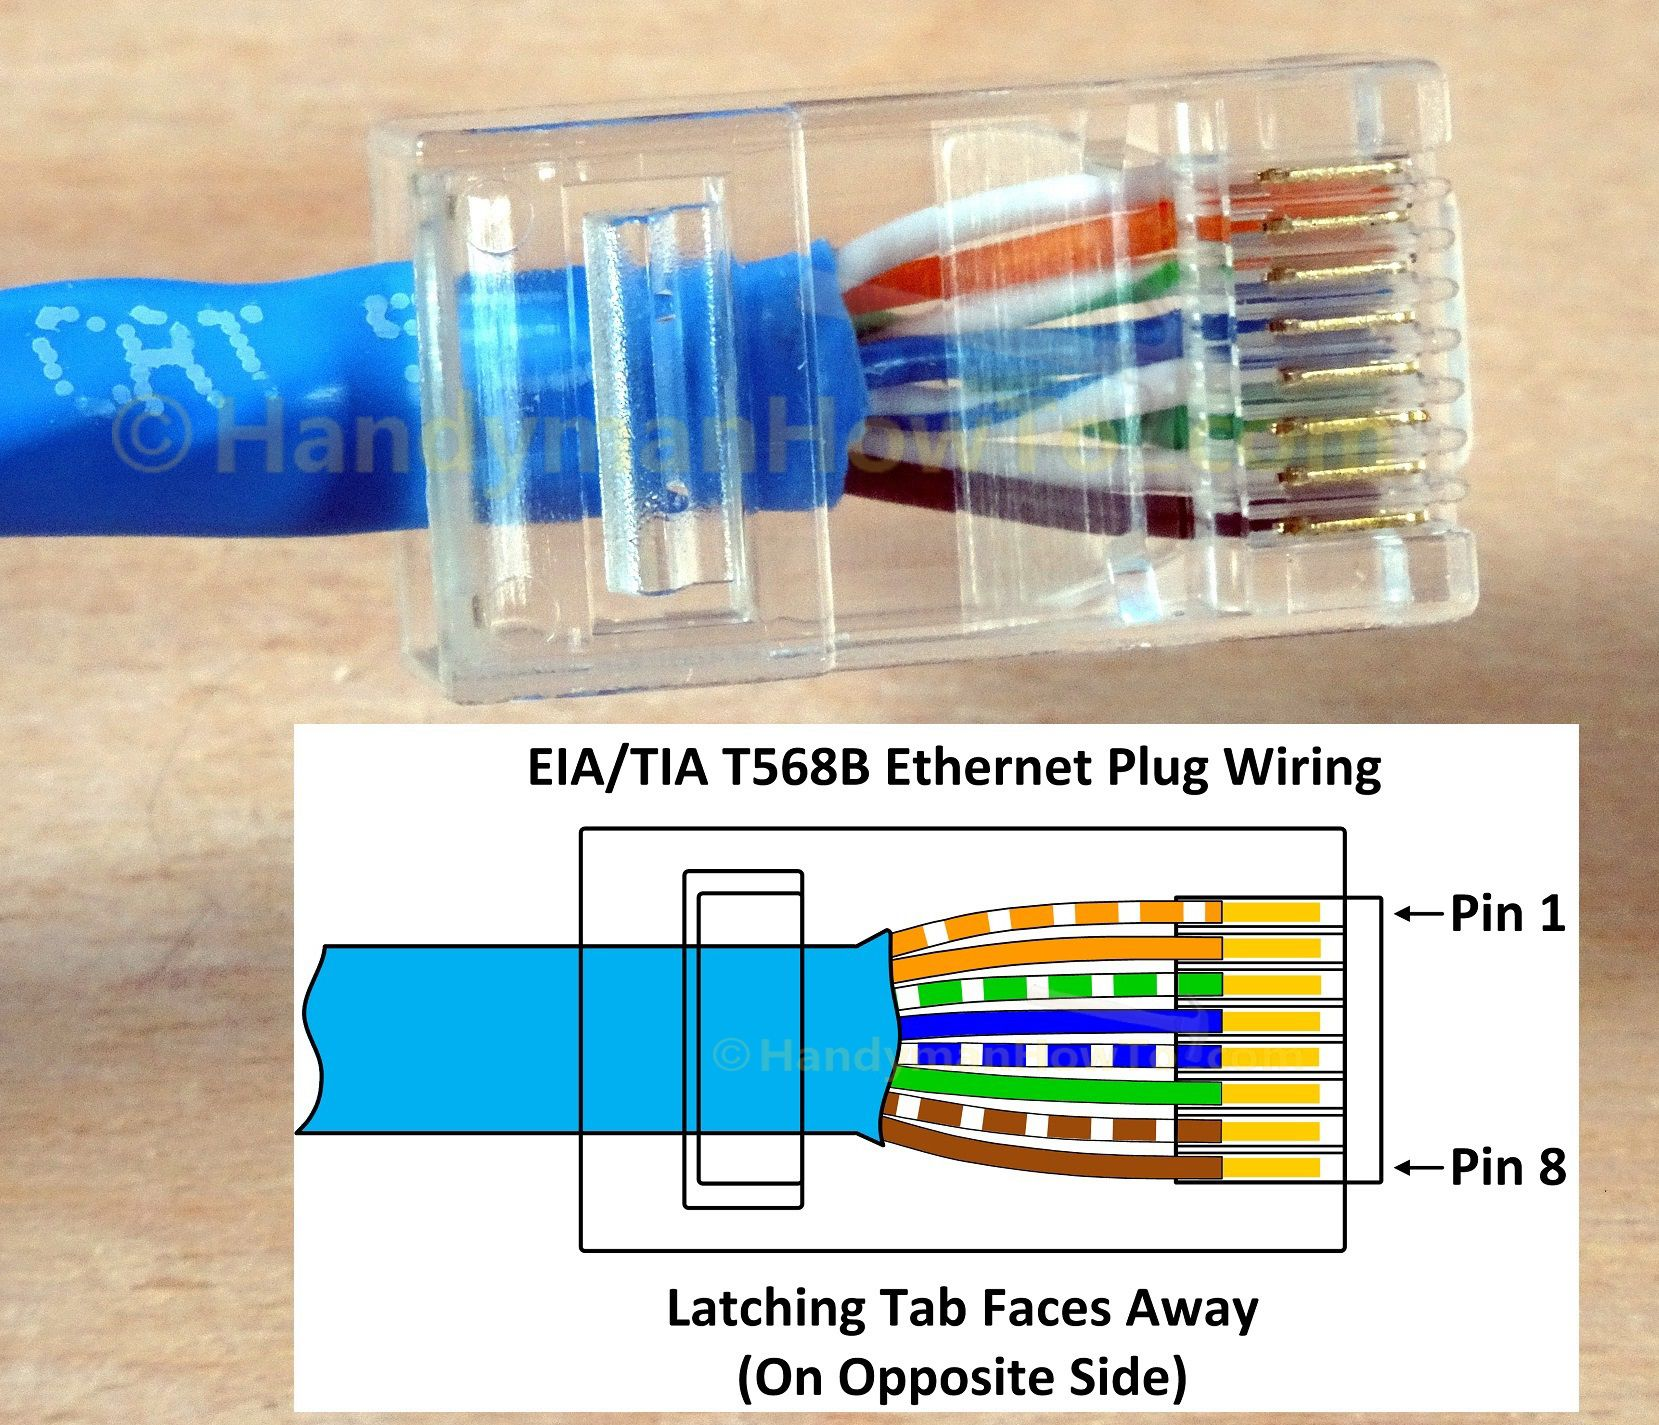 rj45 ethernet plug wiring per eai tia t568b projects pinterest rh pinterest com ethernet port wiring ethernet plug wiring diagram